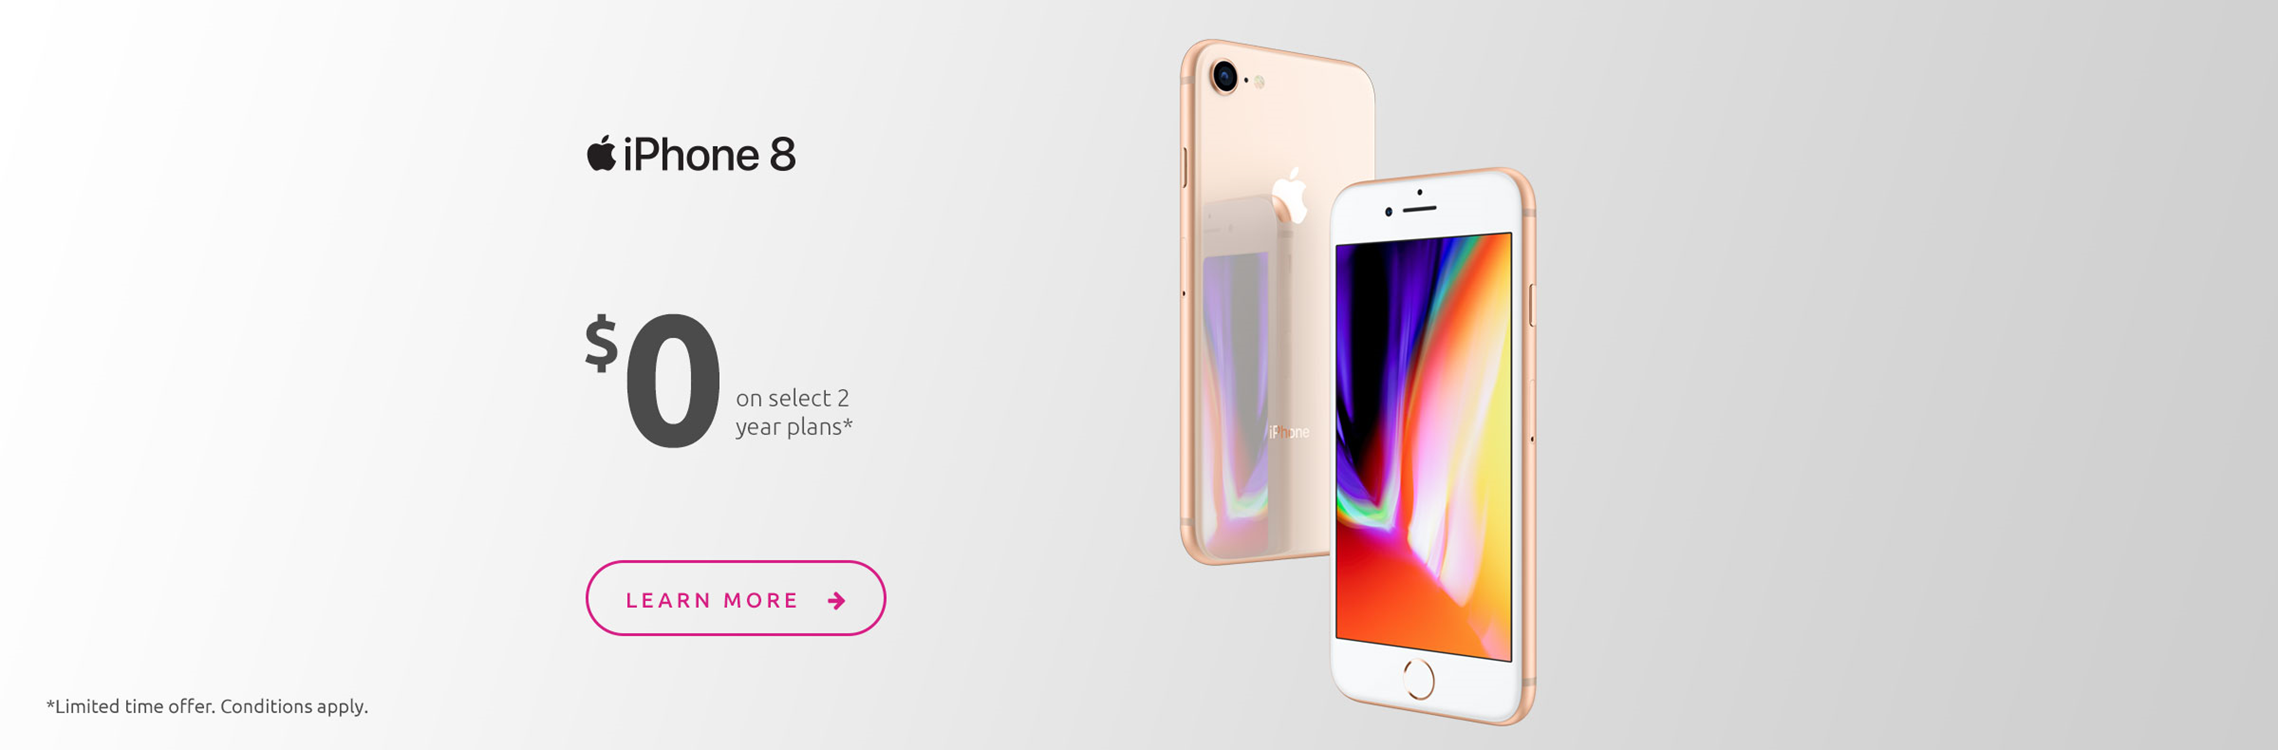 iPhone 8 $0 on select 2-year plans